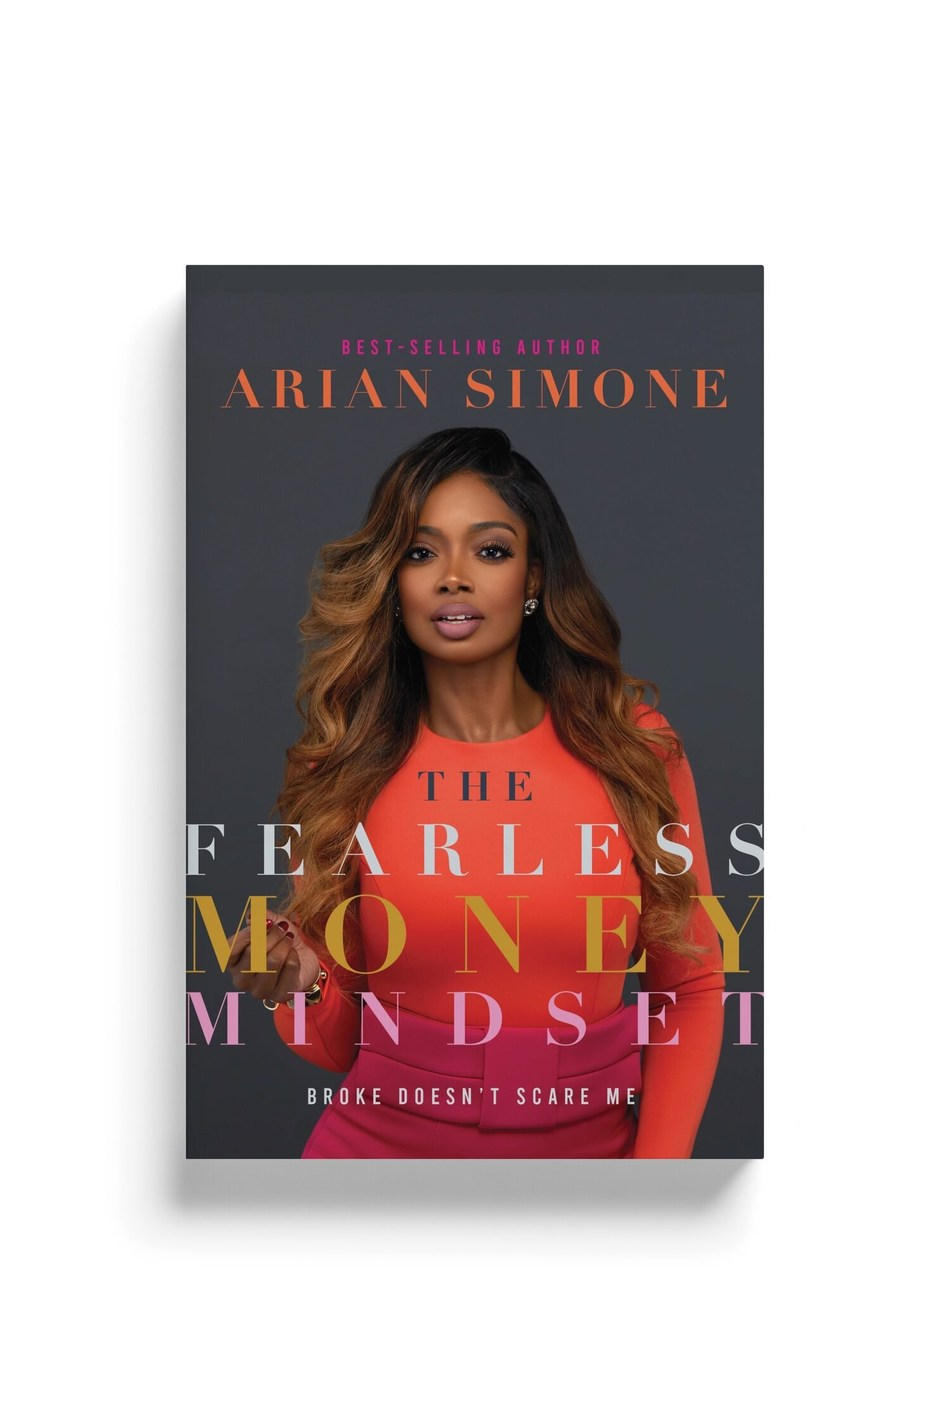 ENTREPRENEUR, INVESTOR, BEST-SELLING AUTHOR ARIAN SIMONE RELEASES FEARLESS MONEY MINDSET BOOK DURING QUARANTINE WITH A VIRTUAL BOOK TOUR